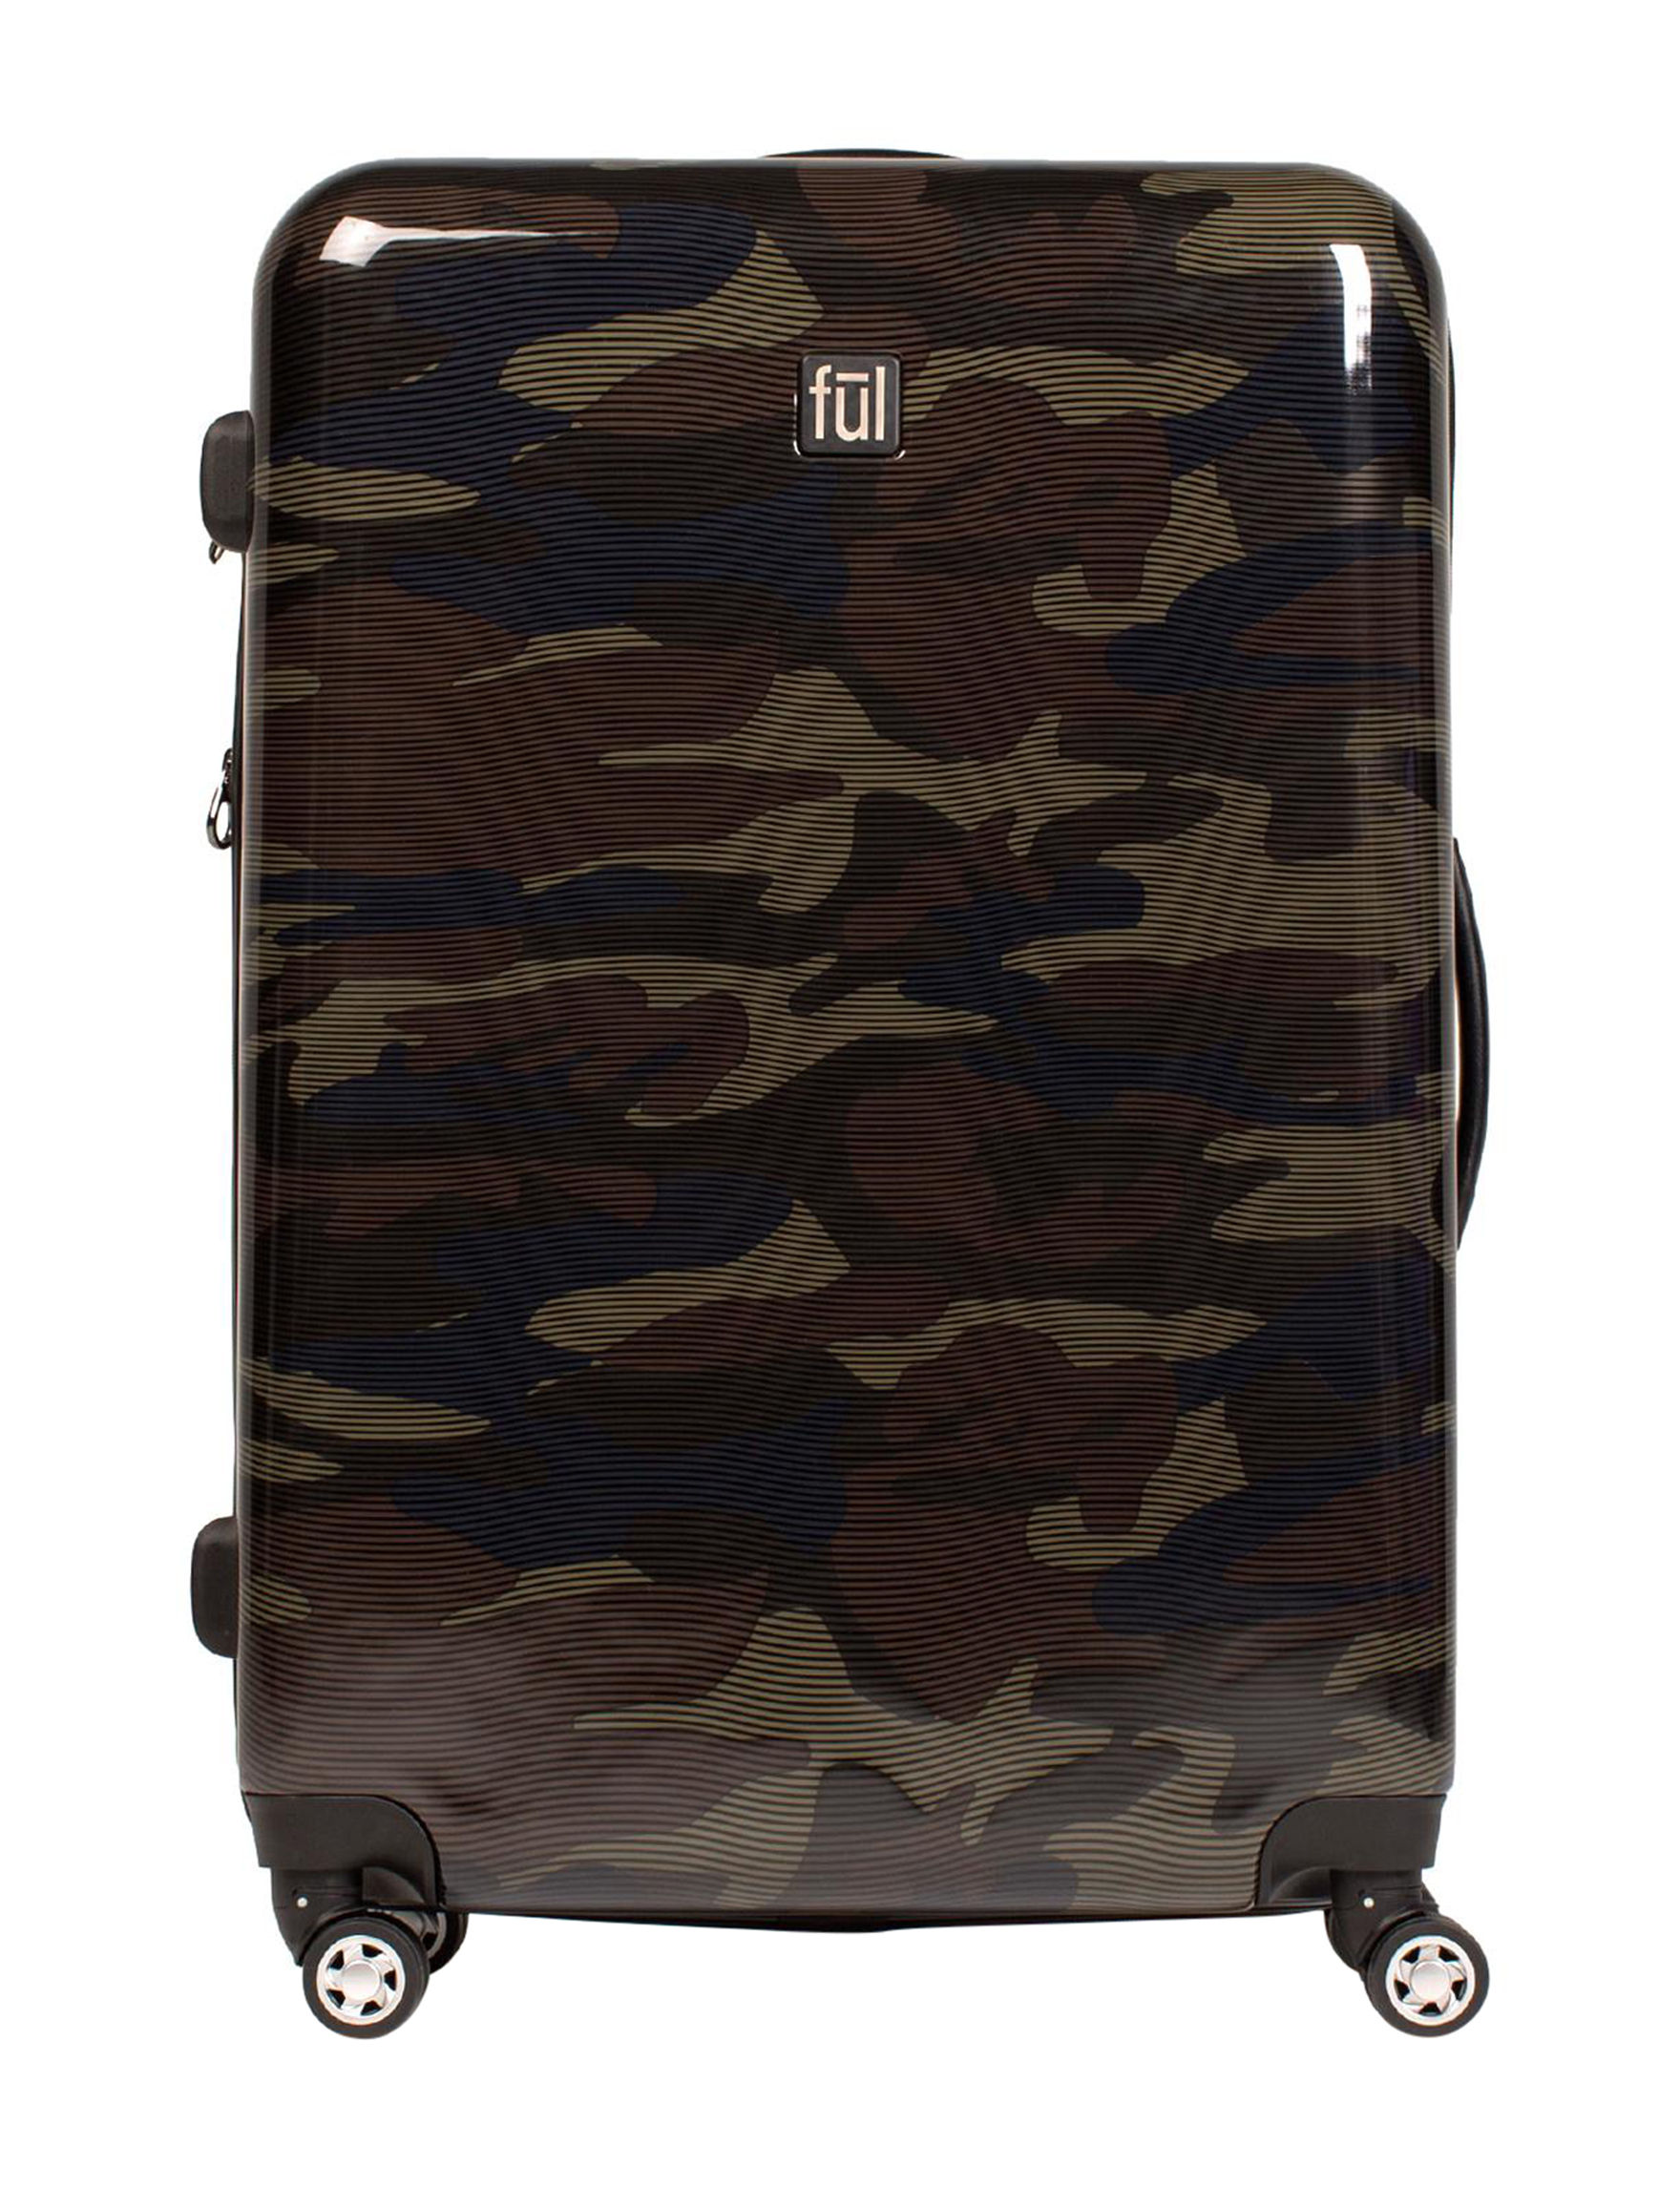 Ful Camo Upright Spinners